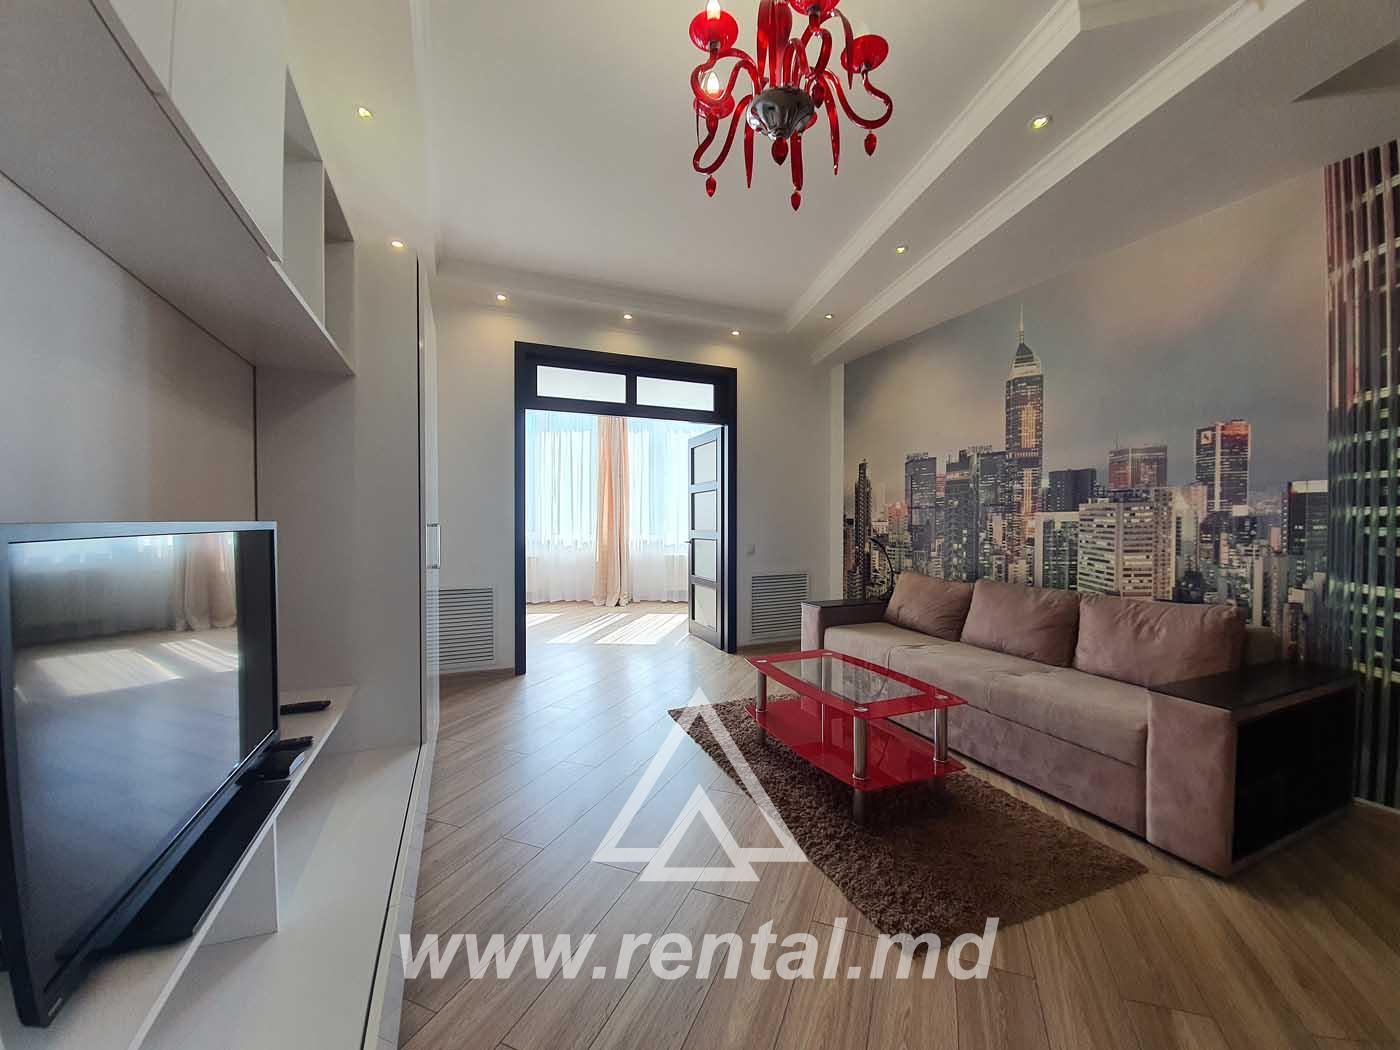 Modern flat for rent in the city center